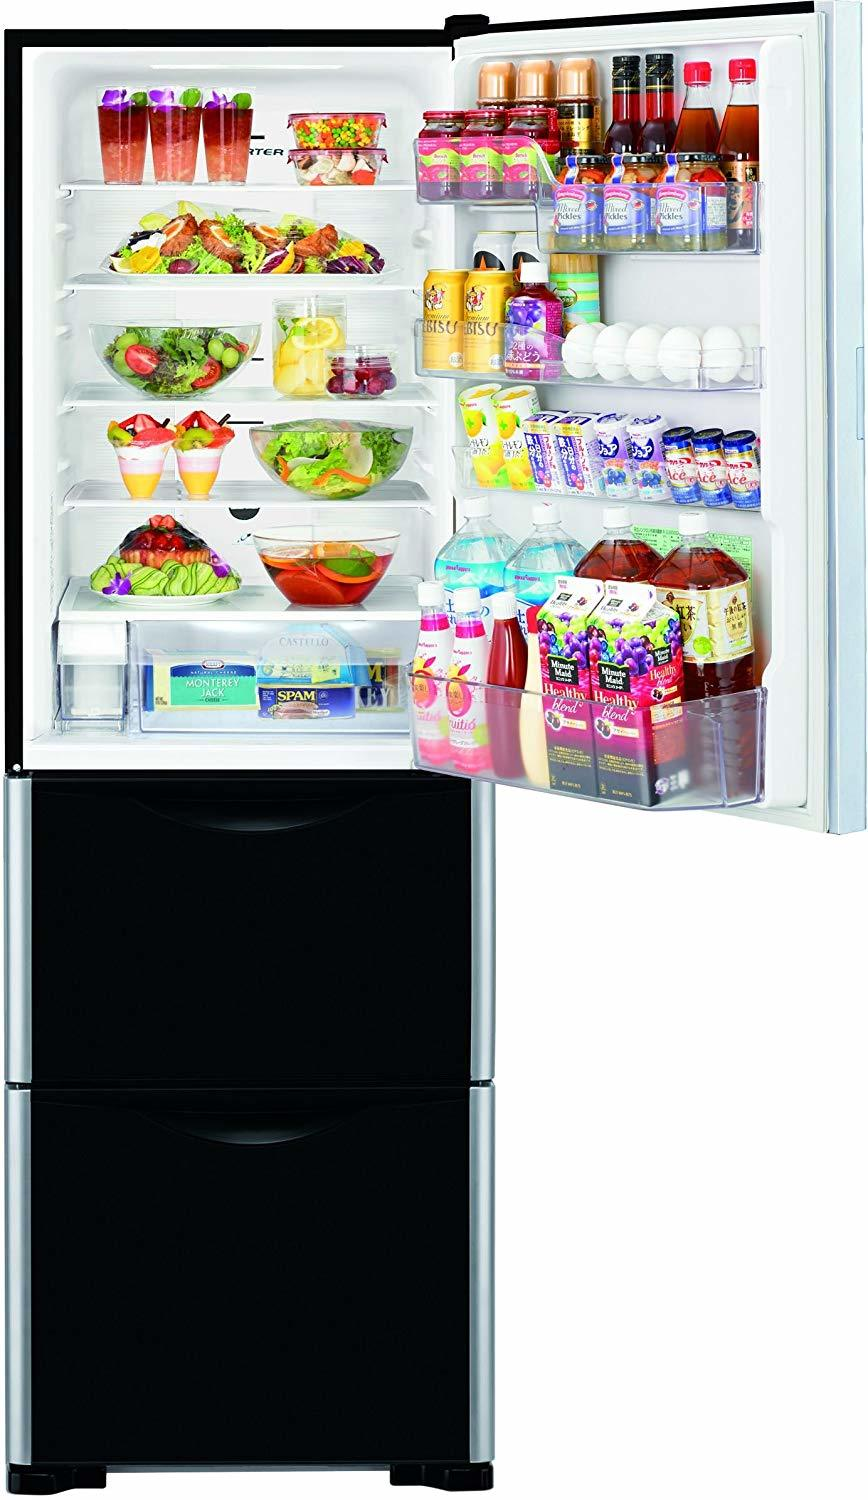 Hitachi 404 L Frost Free Multi-Door Refrigerator(R-SG38FPND, Glass Black, Inverter Compressor)